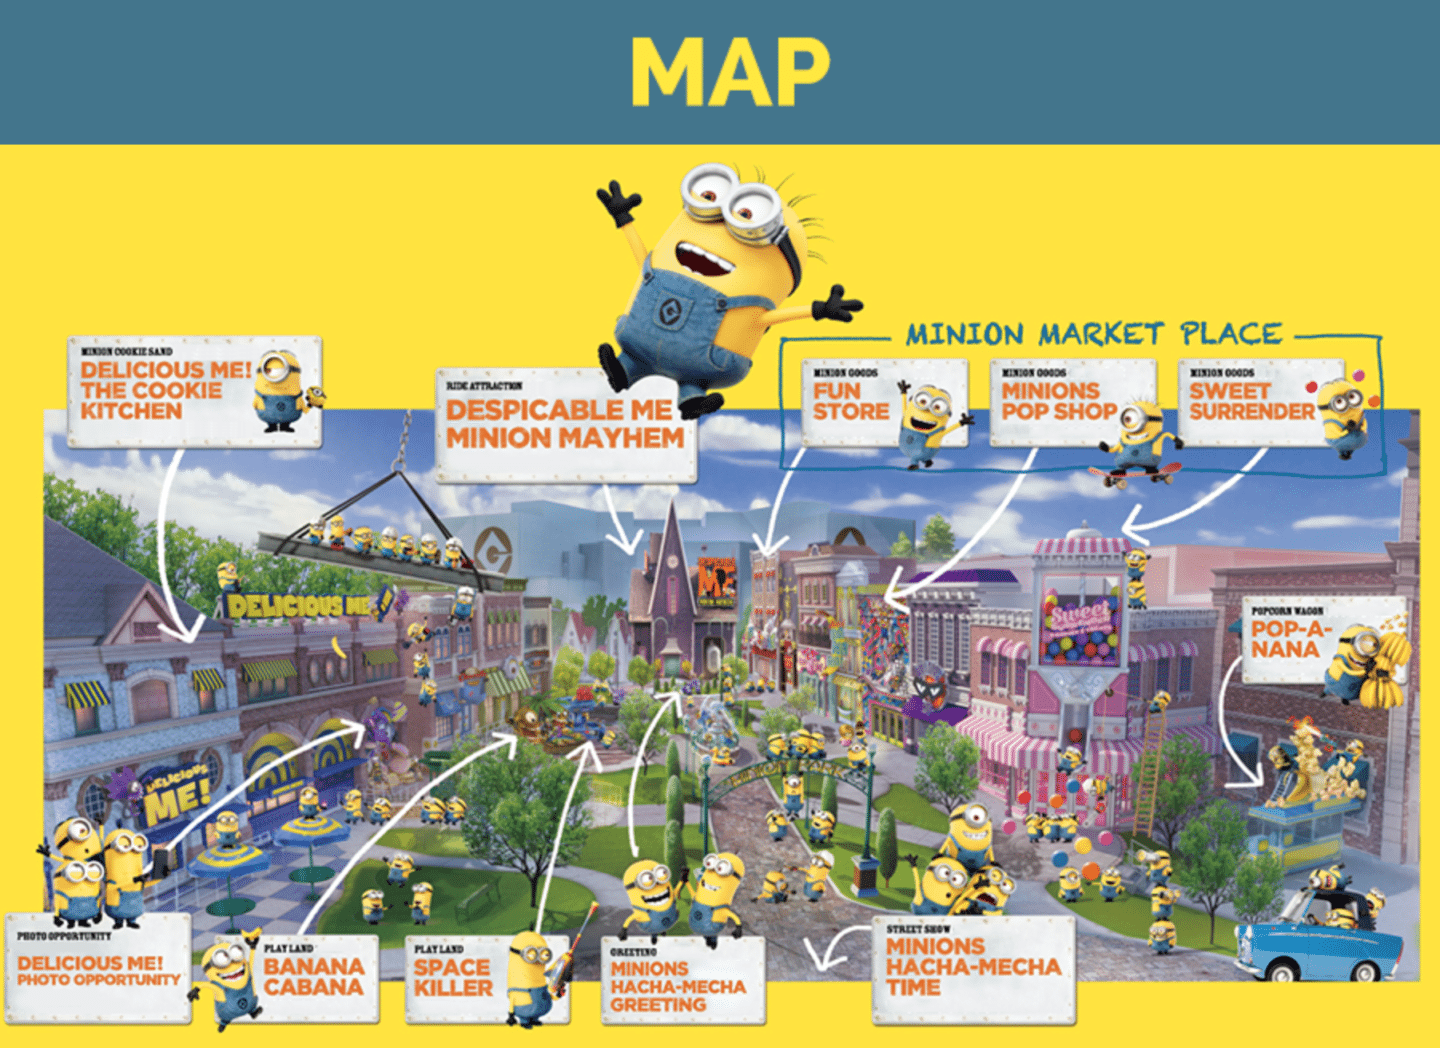 Ultimate guide to minions harry potter and halloween at universal minion park map universal studio japan gumiabroncs Images